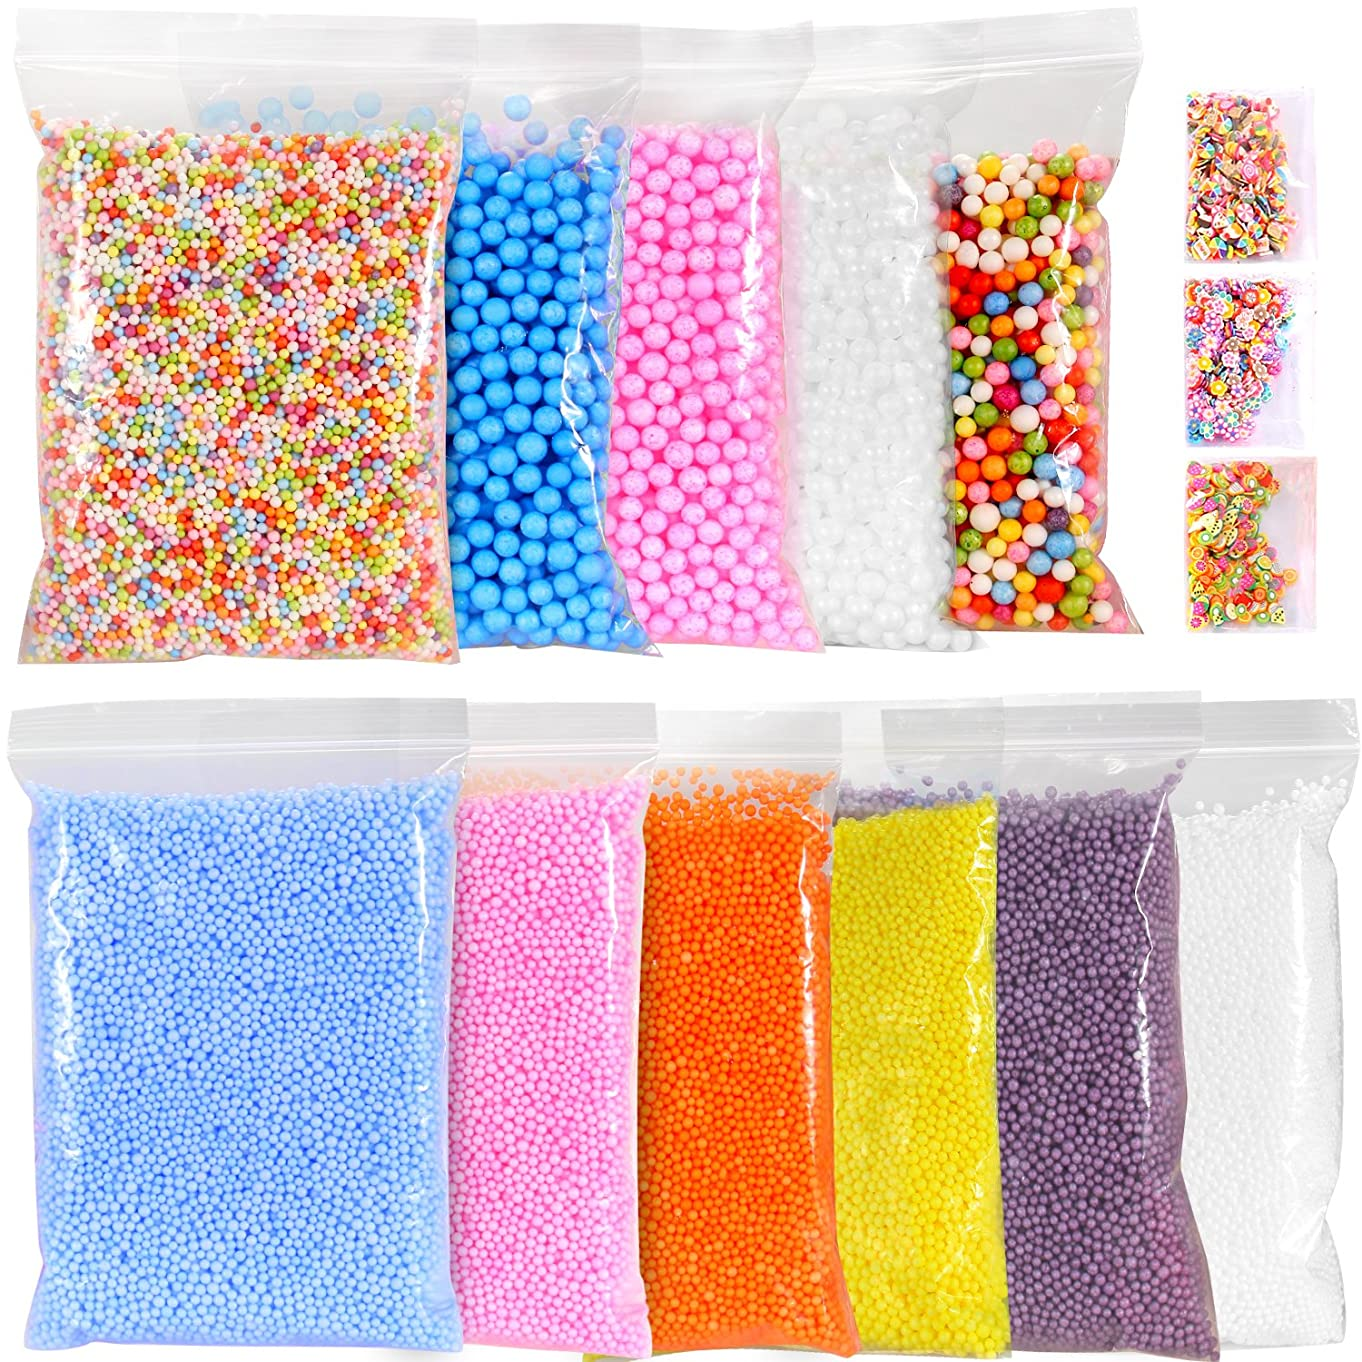 Ohuhu Foam Balls for DIY Slime, 14 Packs Approx 60,000 PCS Decorative Slime Beads for Arts Crafts, Homemade Slime, Fruit Flower Candy Slices for Nail Art, Student Children Kids Back to School Supplies